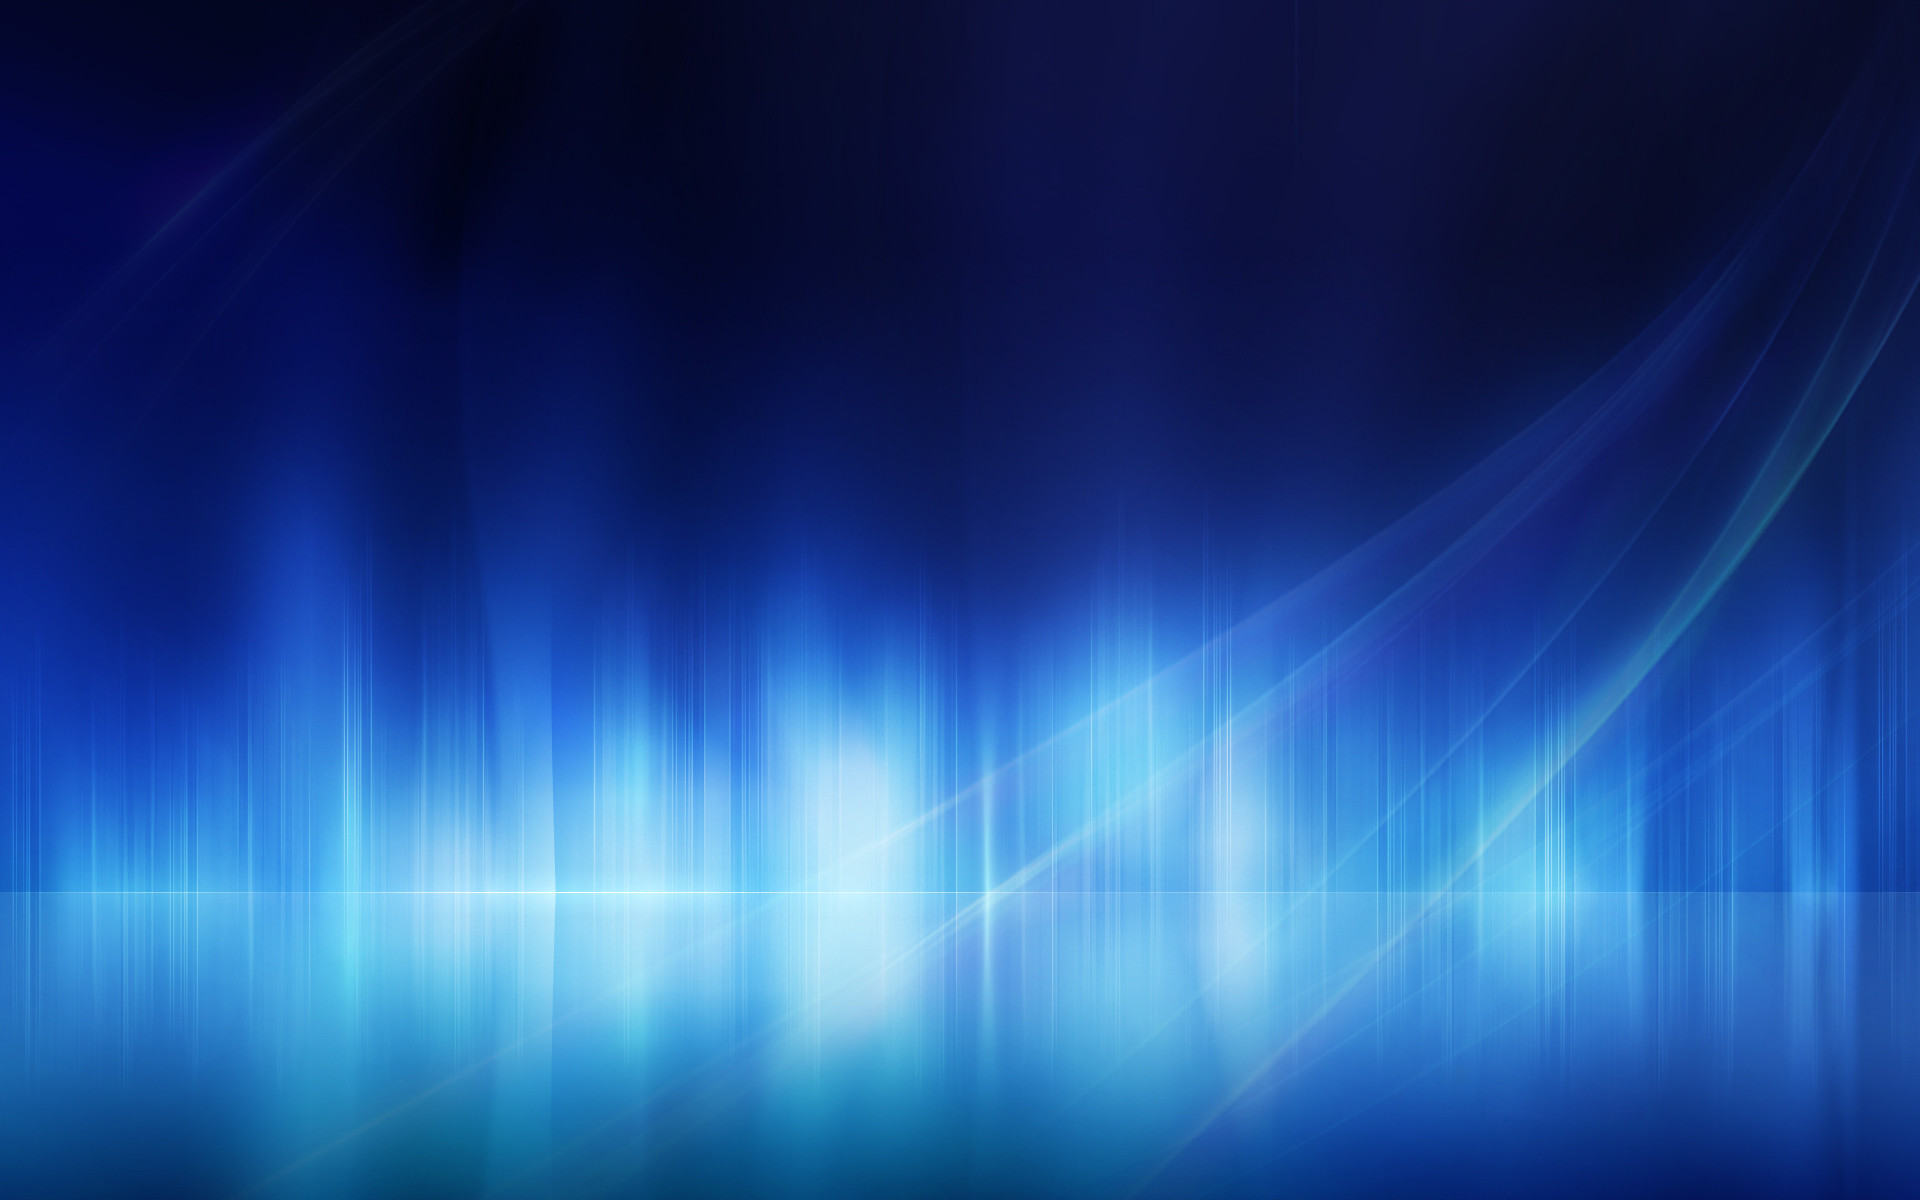 Light Blue Wallpapers, Nice Images of Light Blue, Colelction ID: GZ Blue  Picture Photo Wallpapers Wallpapers)